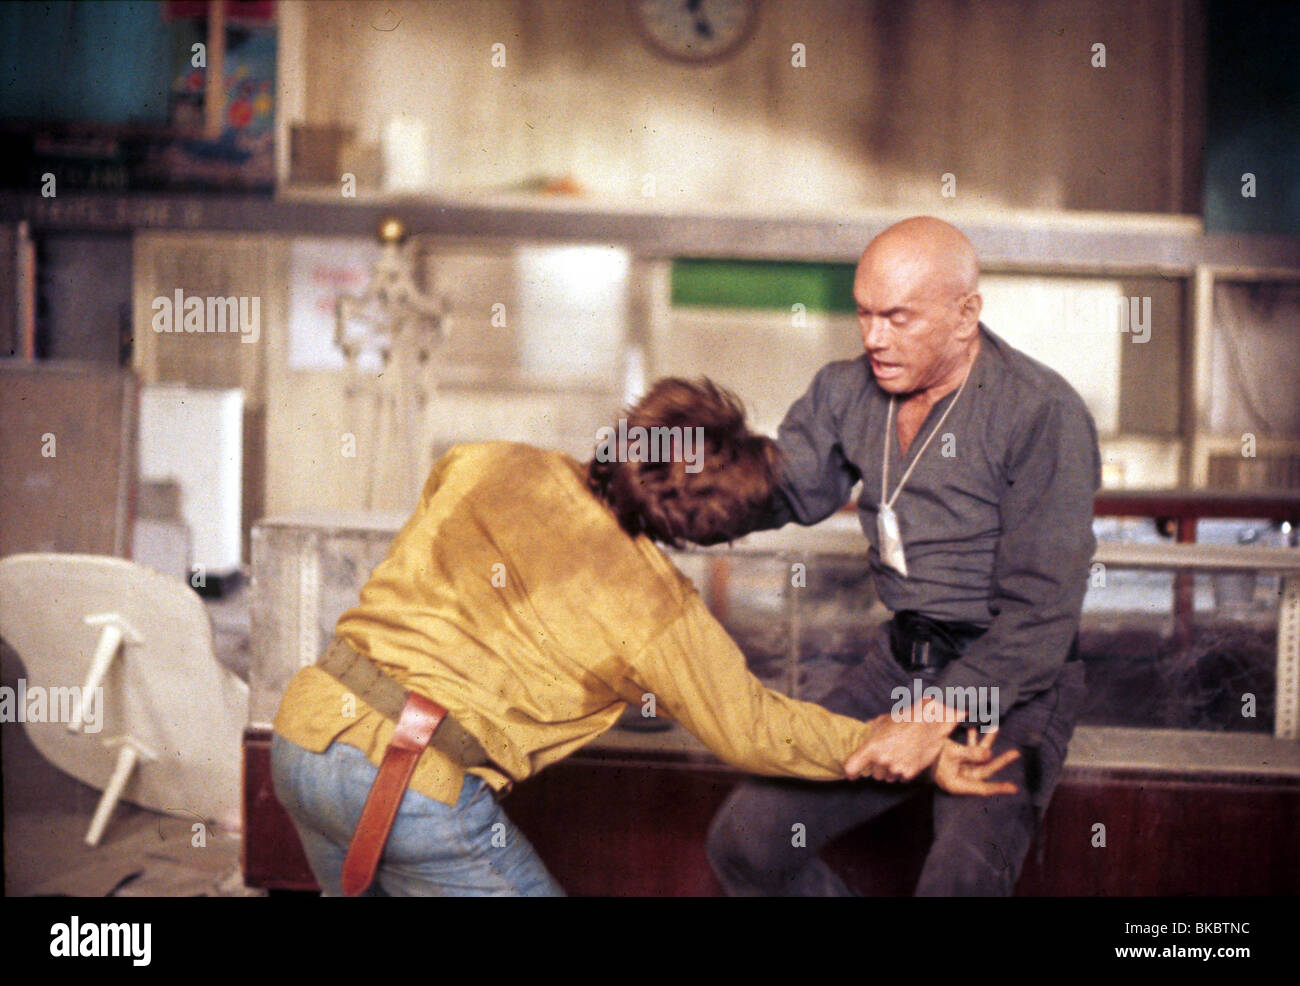 THE ULTIMATE WARRIOR (1975) YUL BRYNNER ULW 002 - Stock Image